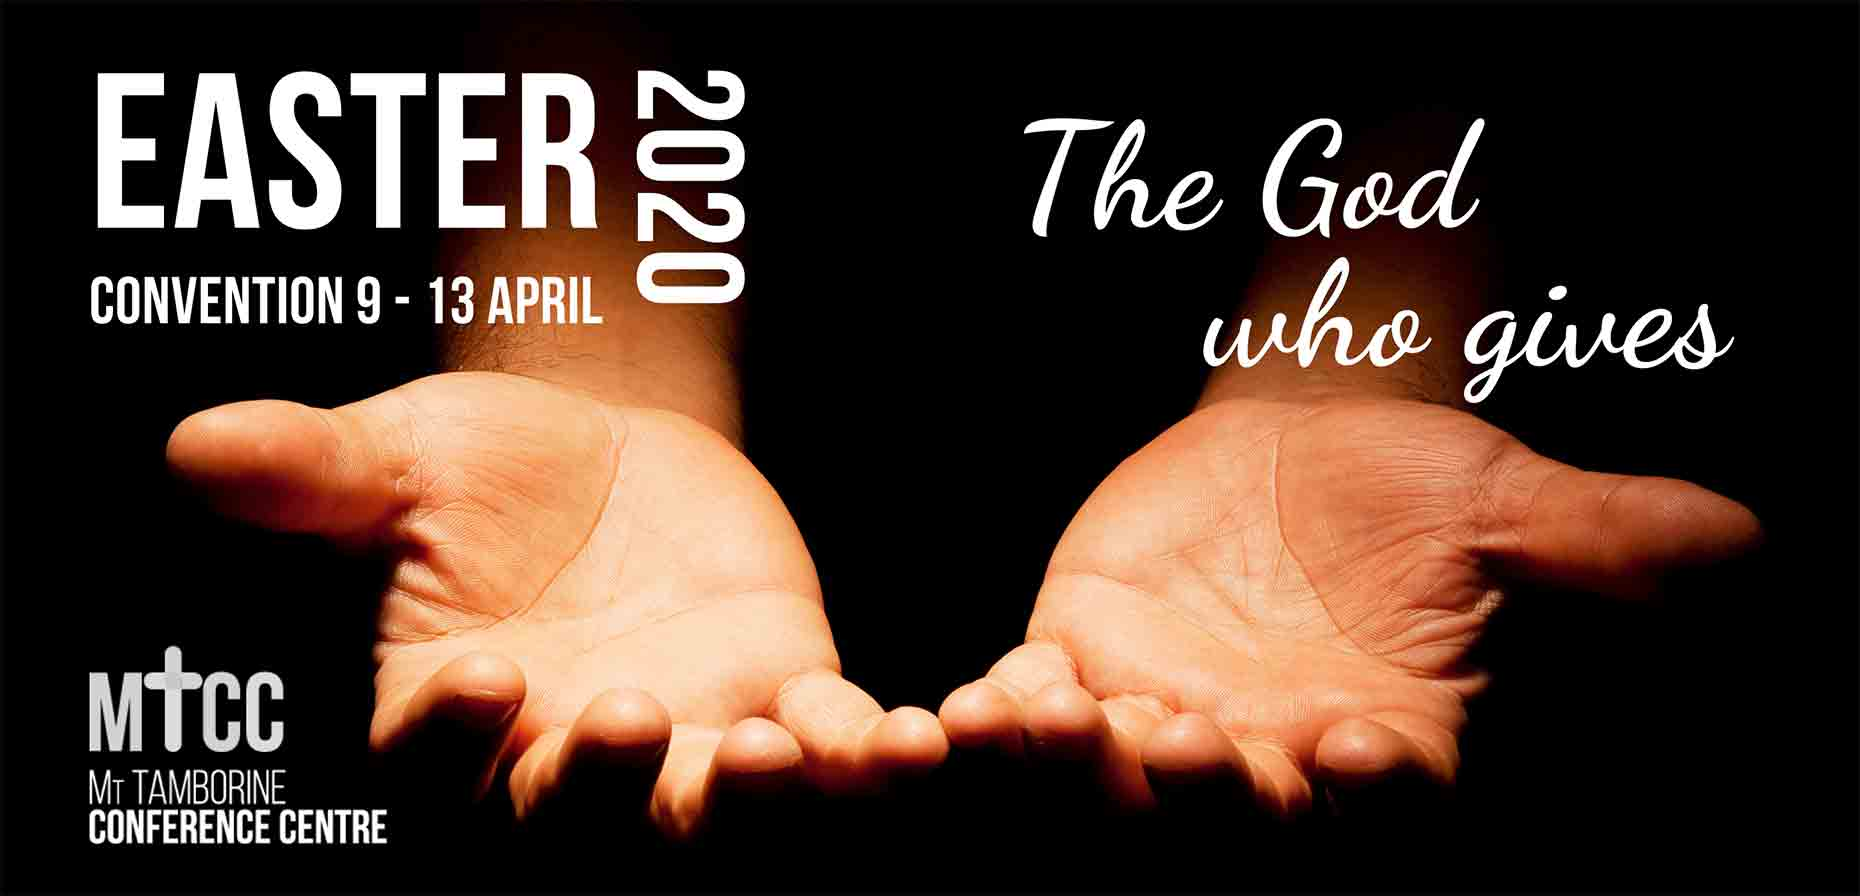 Easter Convention 2020: 9 - 13 April, Mt Tamborine Conference Centre